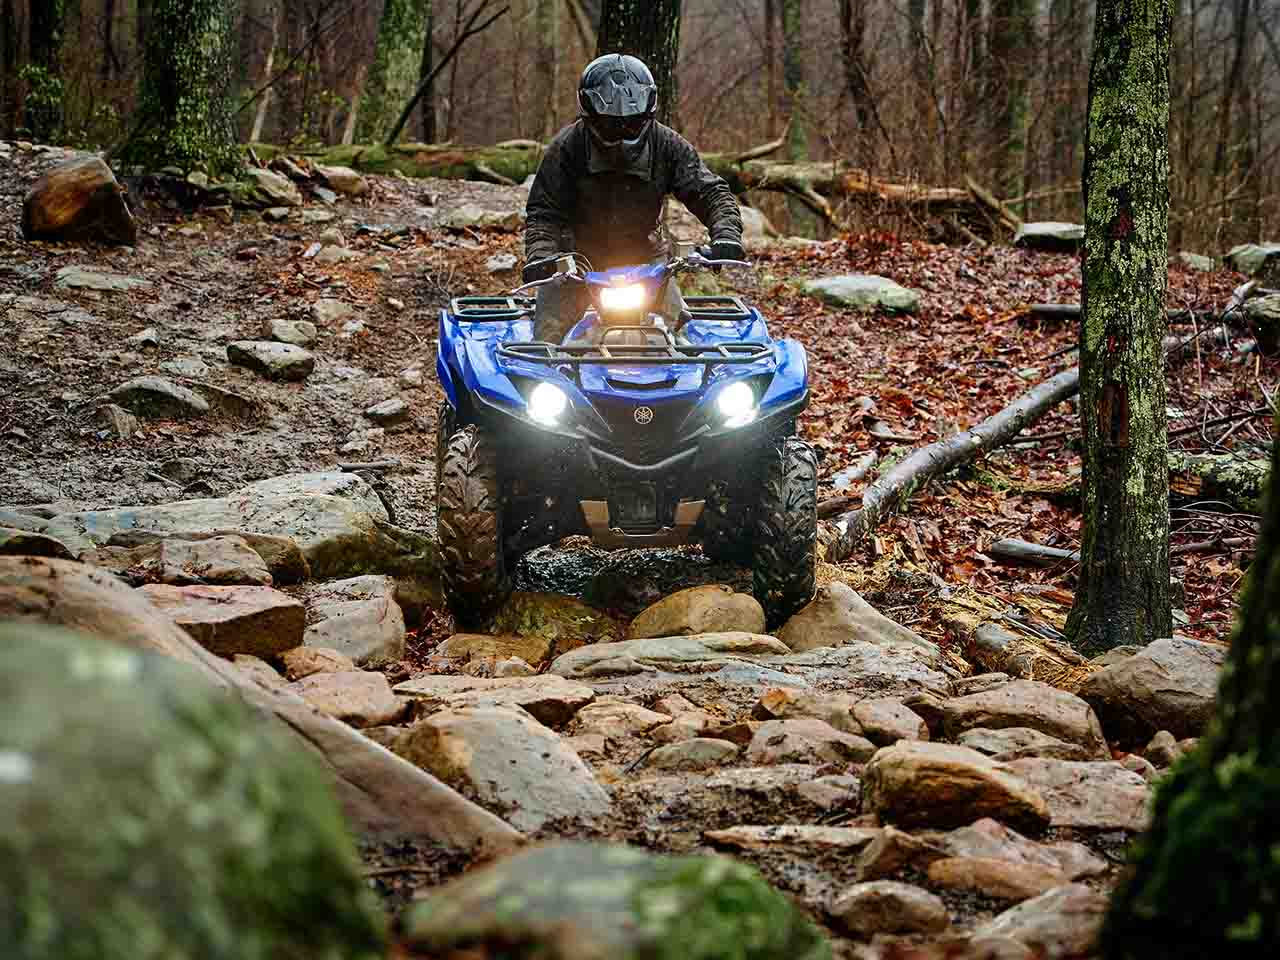 2019 Yamaha Grizzly 700 Gallery 4